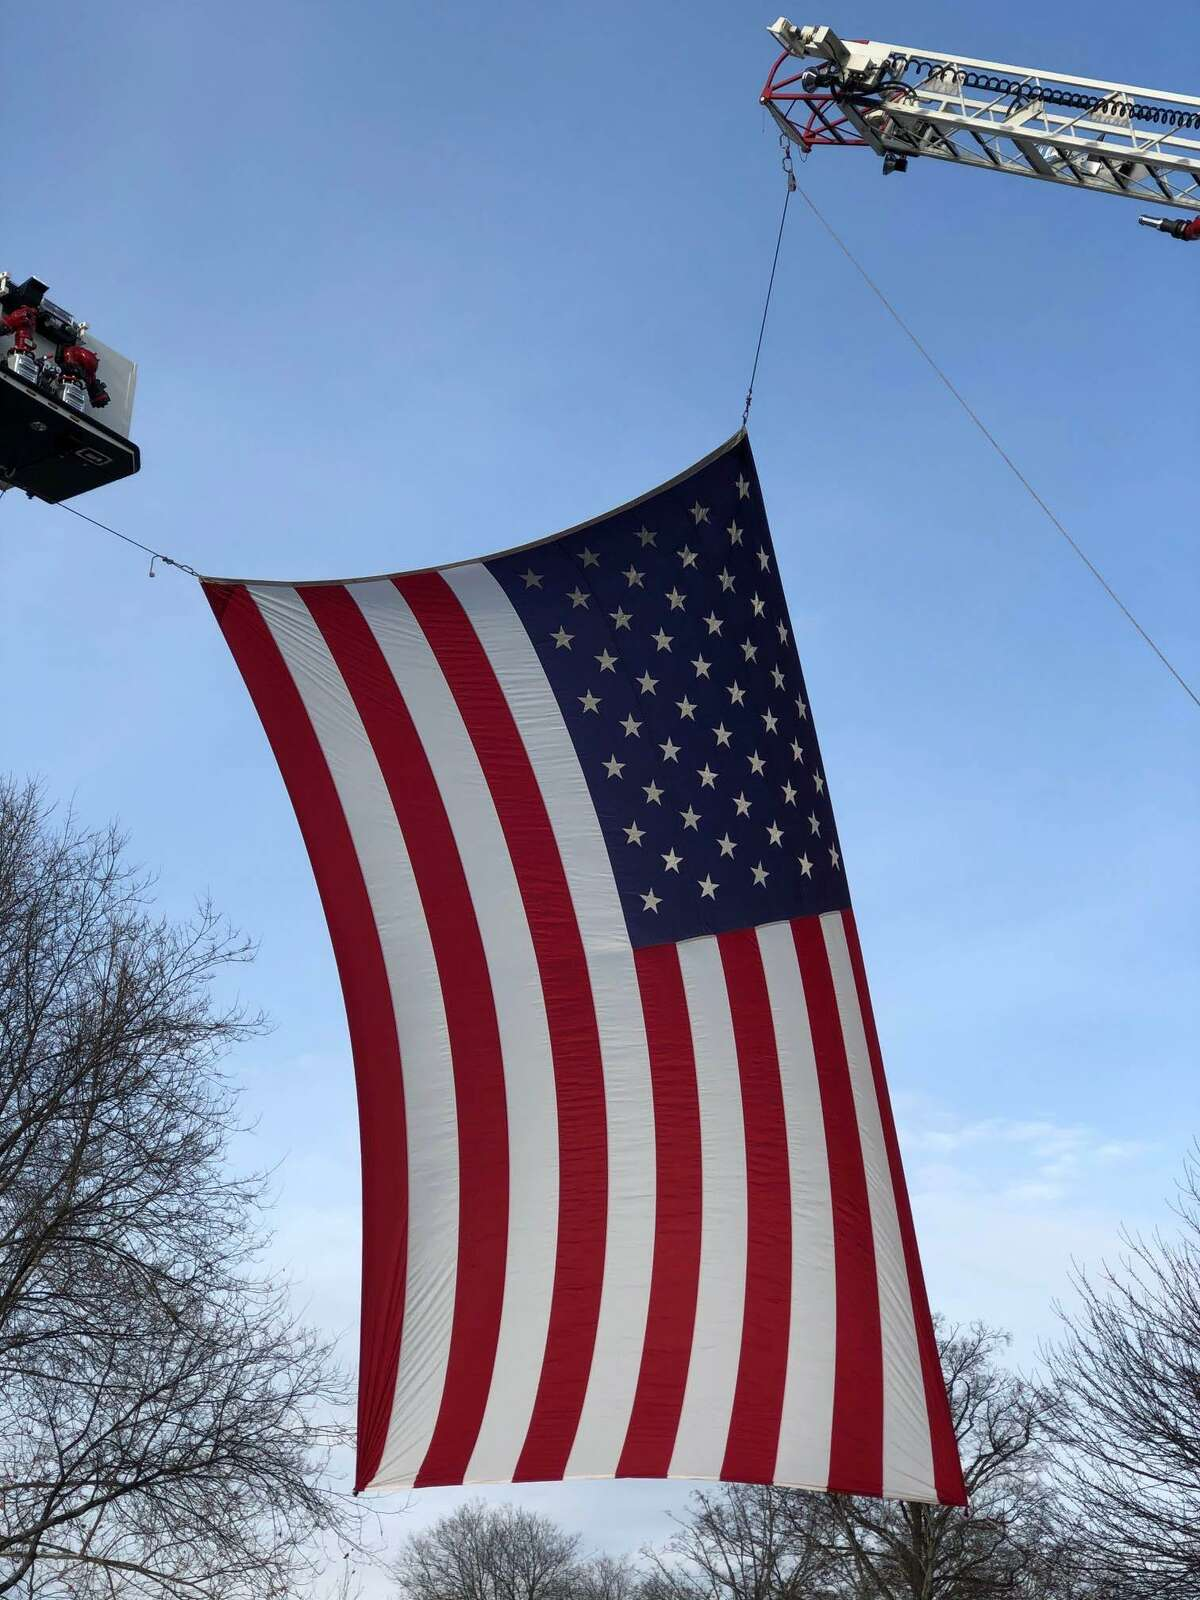 Spectrum/ A large American flag draped across the north side of Main Street in New Milford last Friday, Dec. 6, 2019, paid tribute to Ronald J. Adams of New Milford. Adams, 71, died Nov. 29 at his home. Firefighters from Water Witch Hose Co. #2 in New Milford and Newtown fire department hung the flag between New Milford's Tower 25 and Newtown's Truck 14 from the crossover near the bandstand to Church Street. A member of Iron Works Local #40, Adams had been of the construction of the World Trade Center. After 9/11, Adams stepped up and was part of the rescue/recovery efforts, which contributed to his disease.